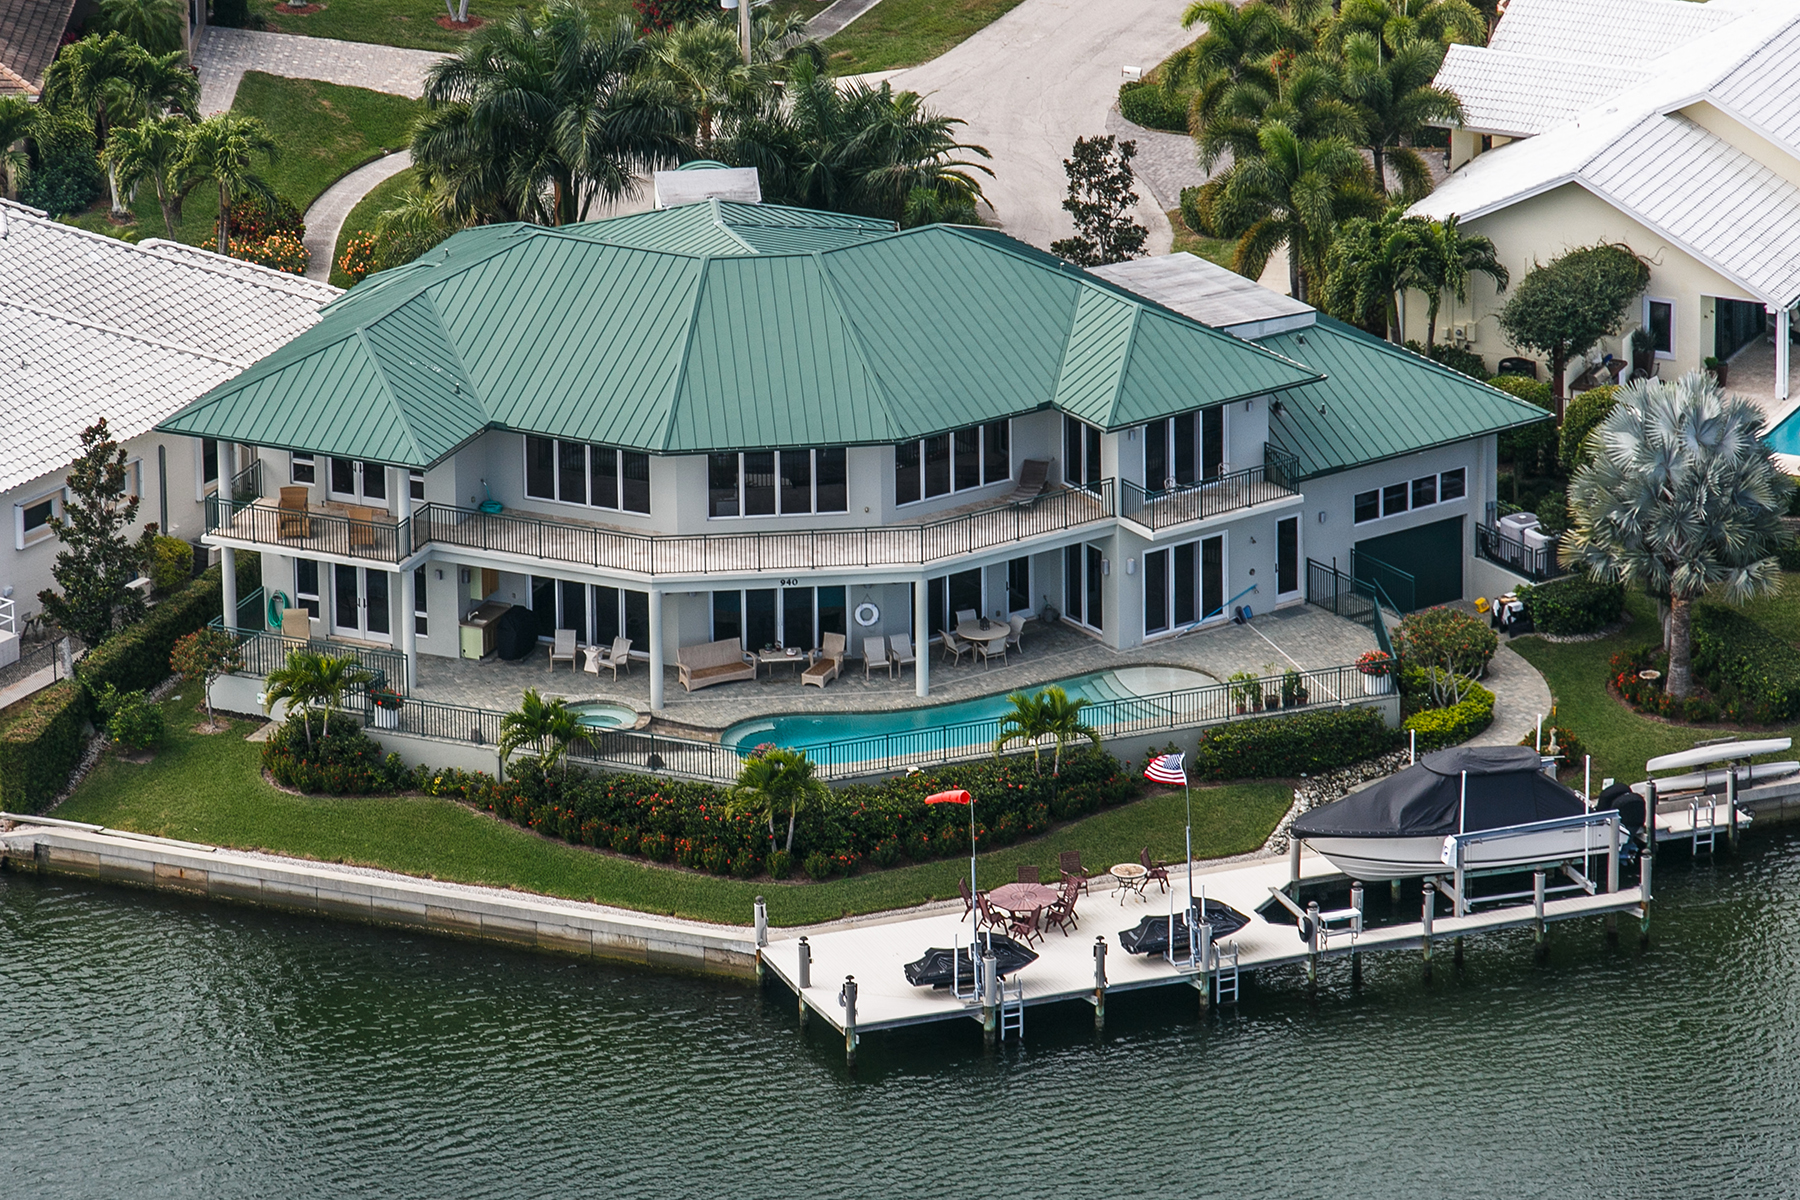 Single Family Home for Sale at MARCO ISLAND- TULIP COURT 940 Tulip Ct Marco Island, Florida, 34145 United States